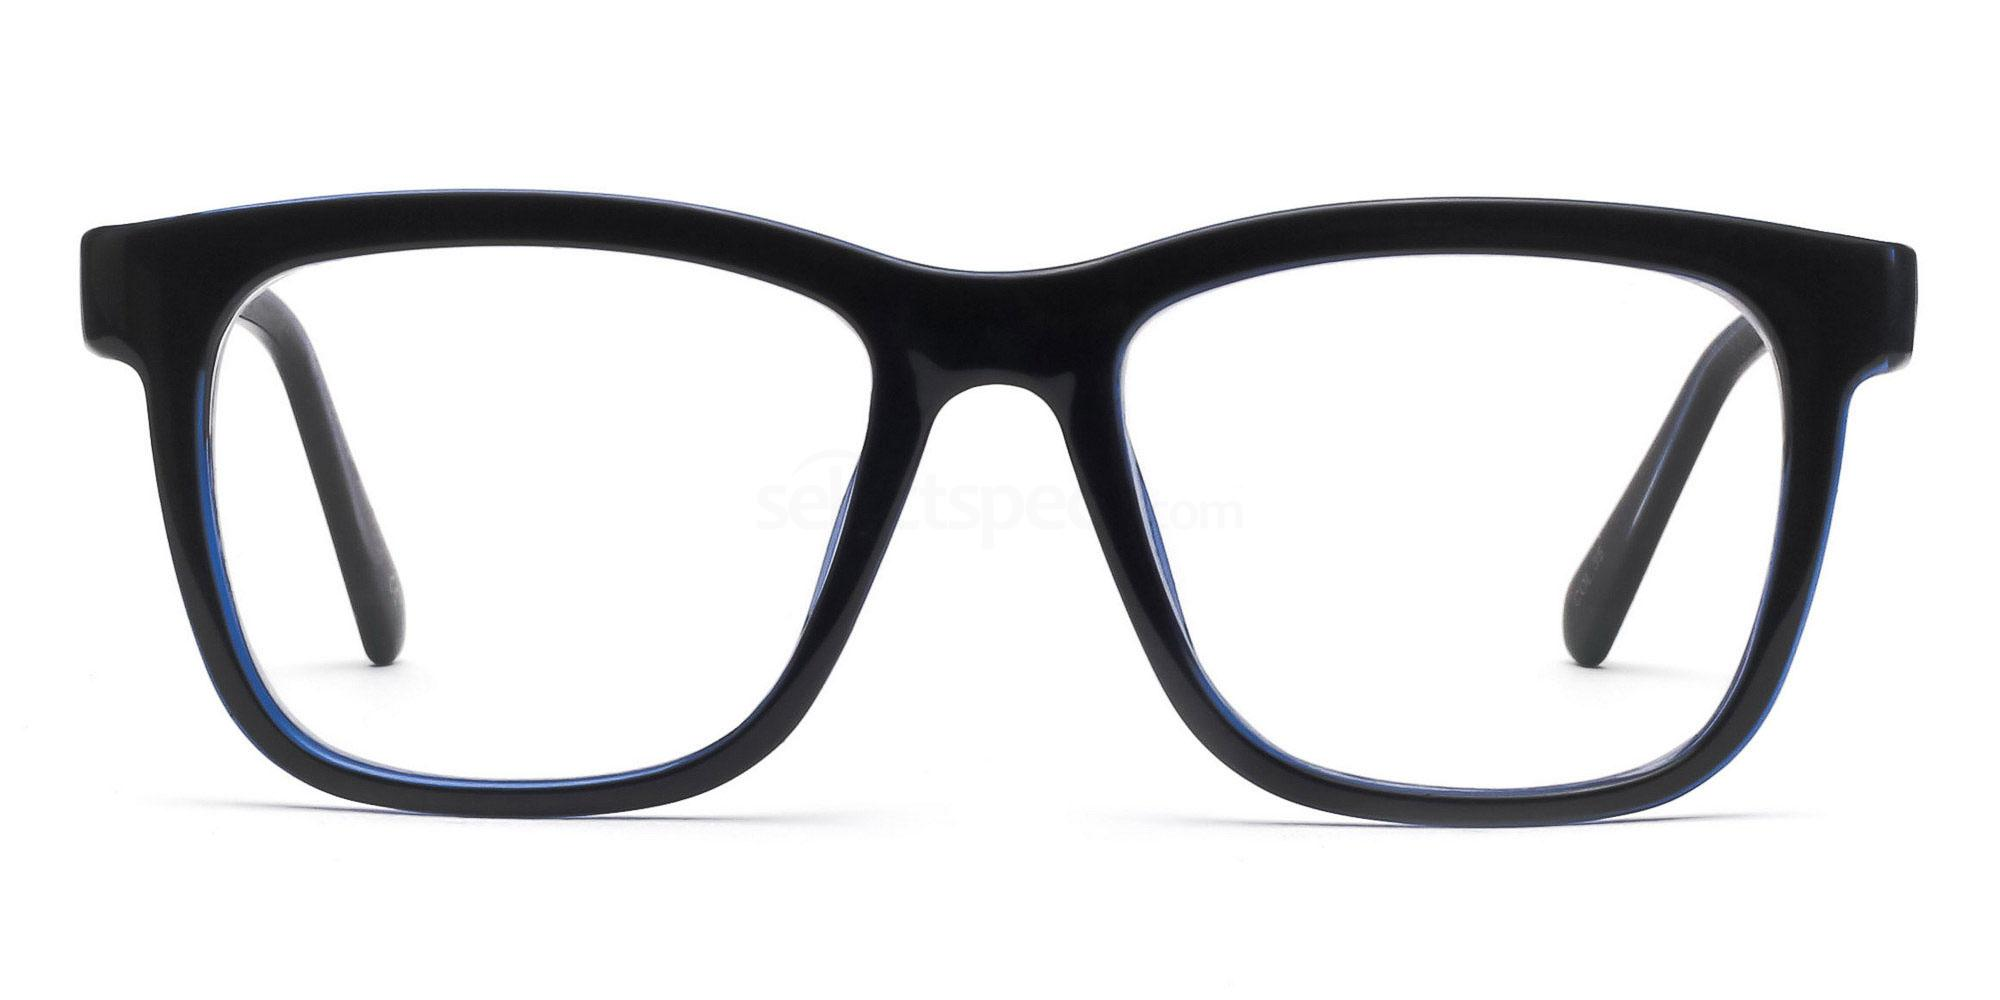 COL.35 2444 - Black and Blue Glasses, Savannah